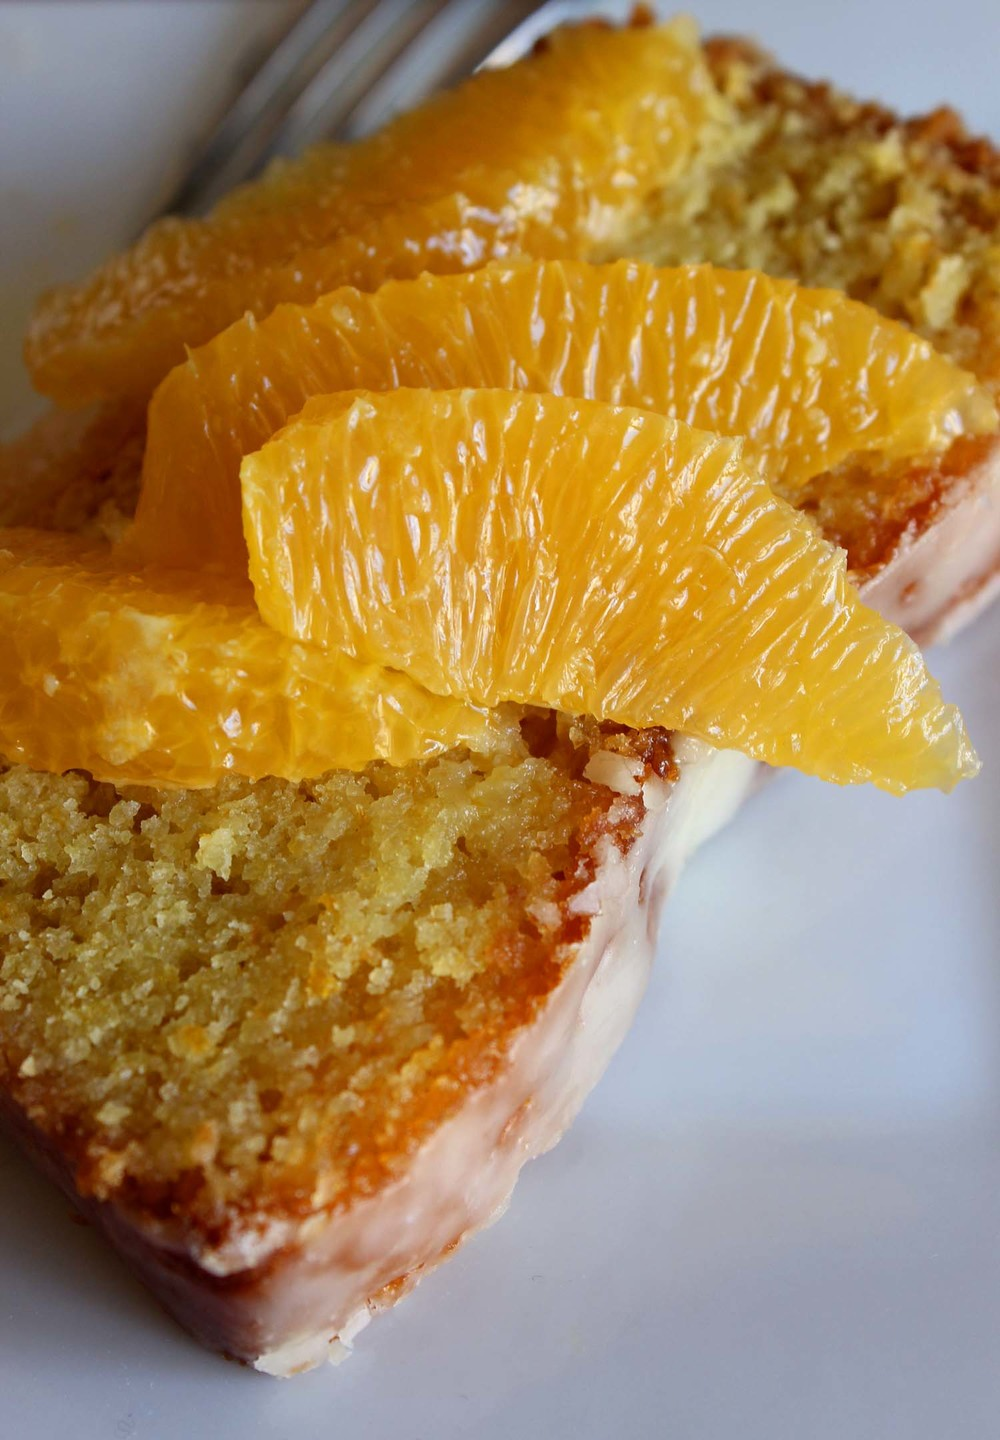 Valencia Orange Pound Cake  | Image:  Laura Messersmith